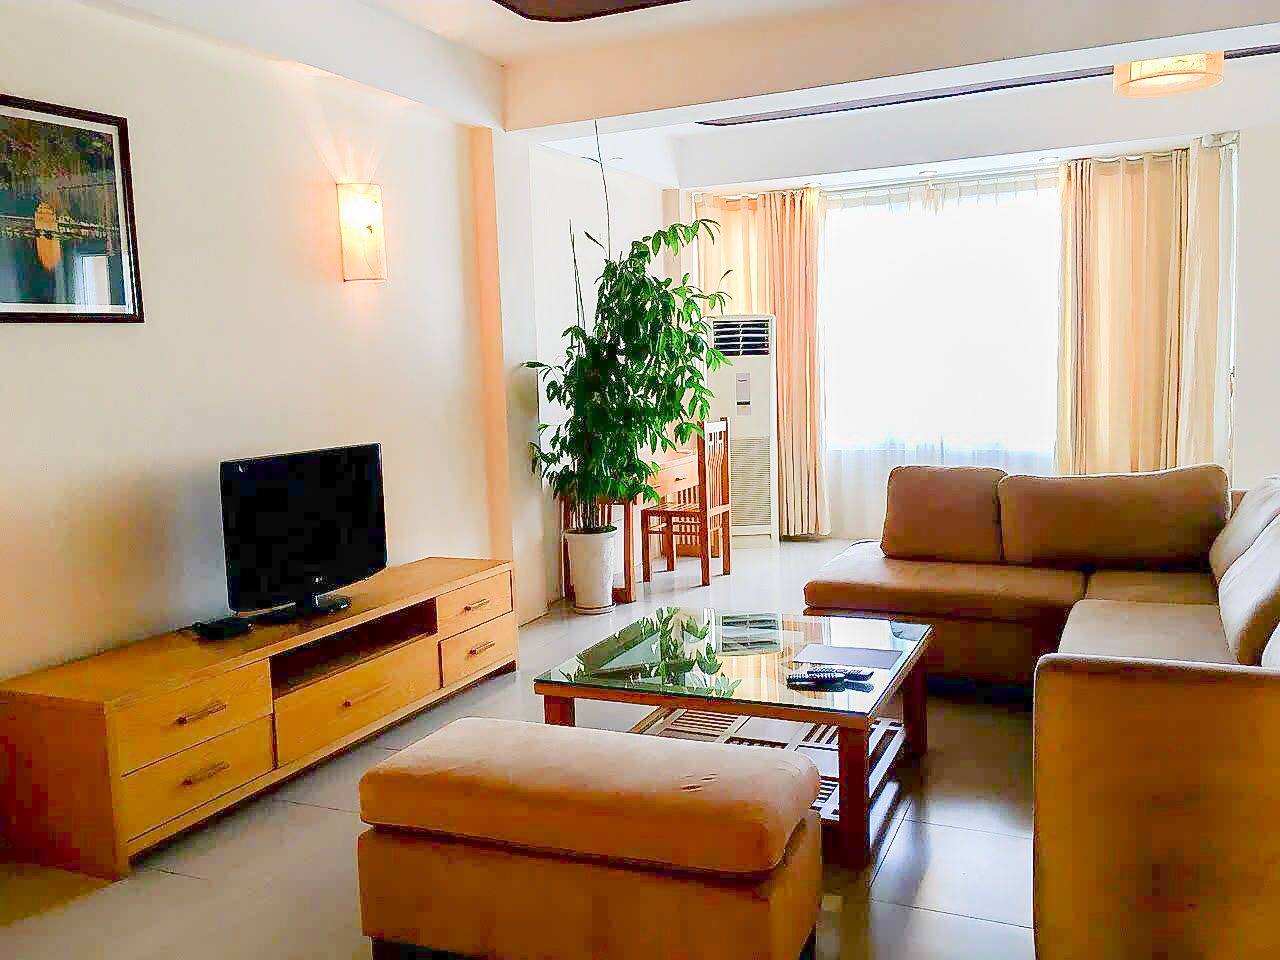 Lakeview 2 bedroom apartment for rent on Nhat Chieu, Tay Ho